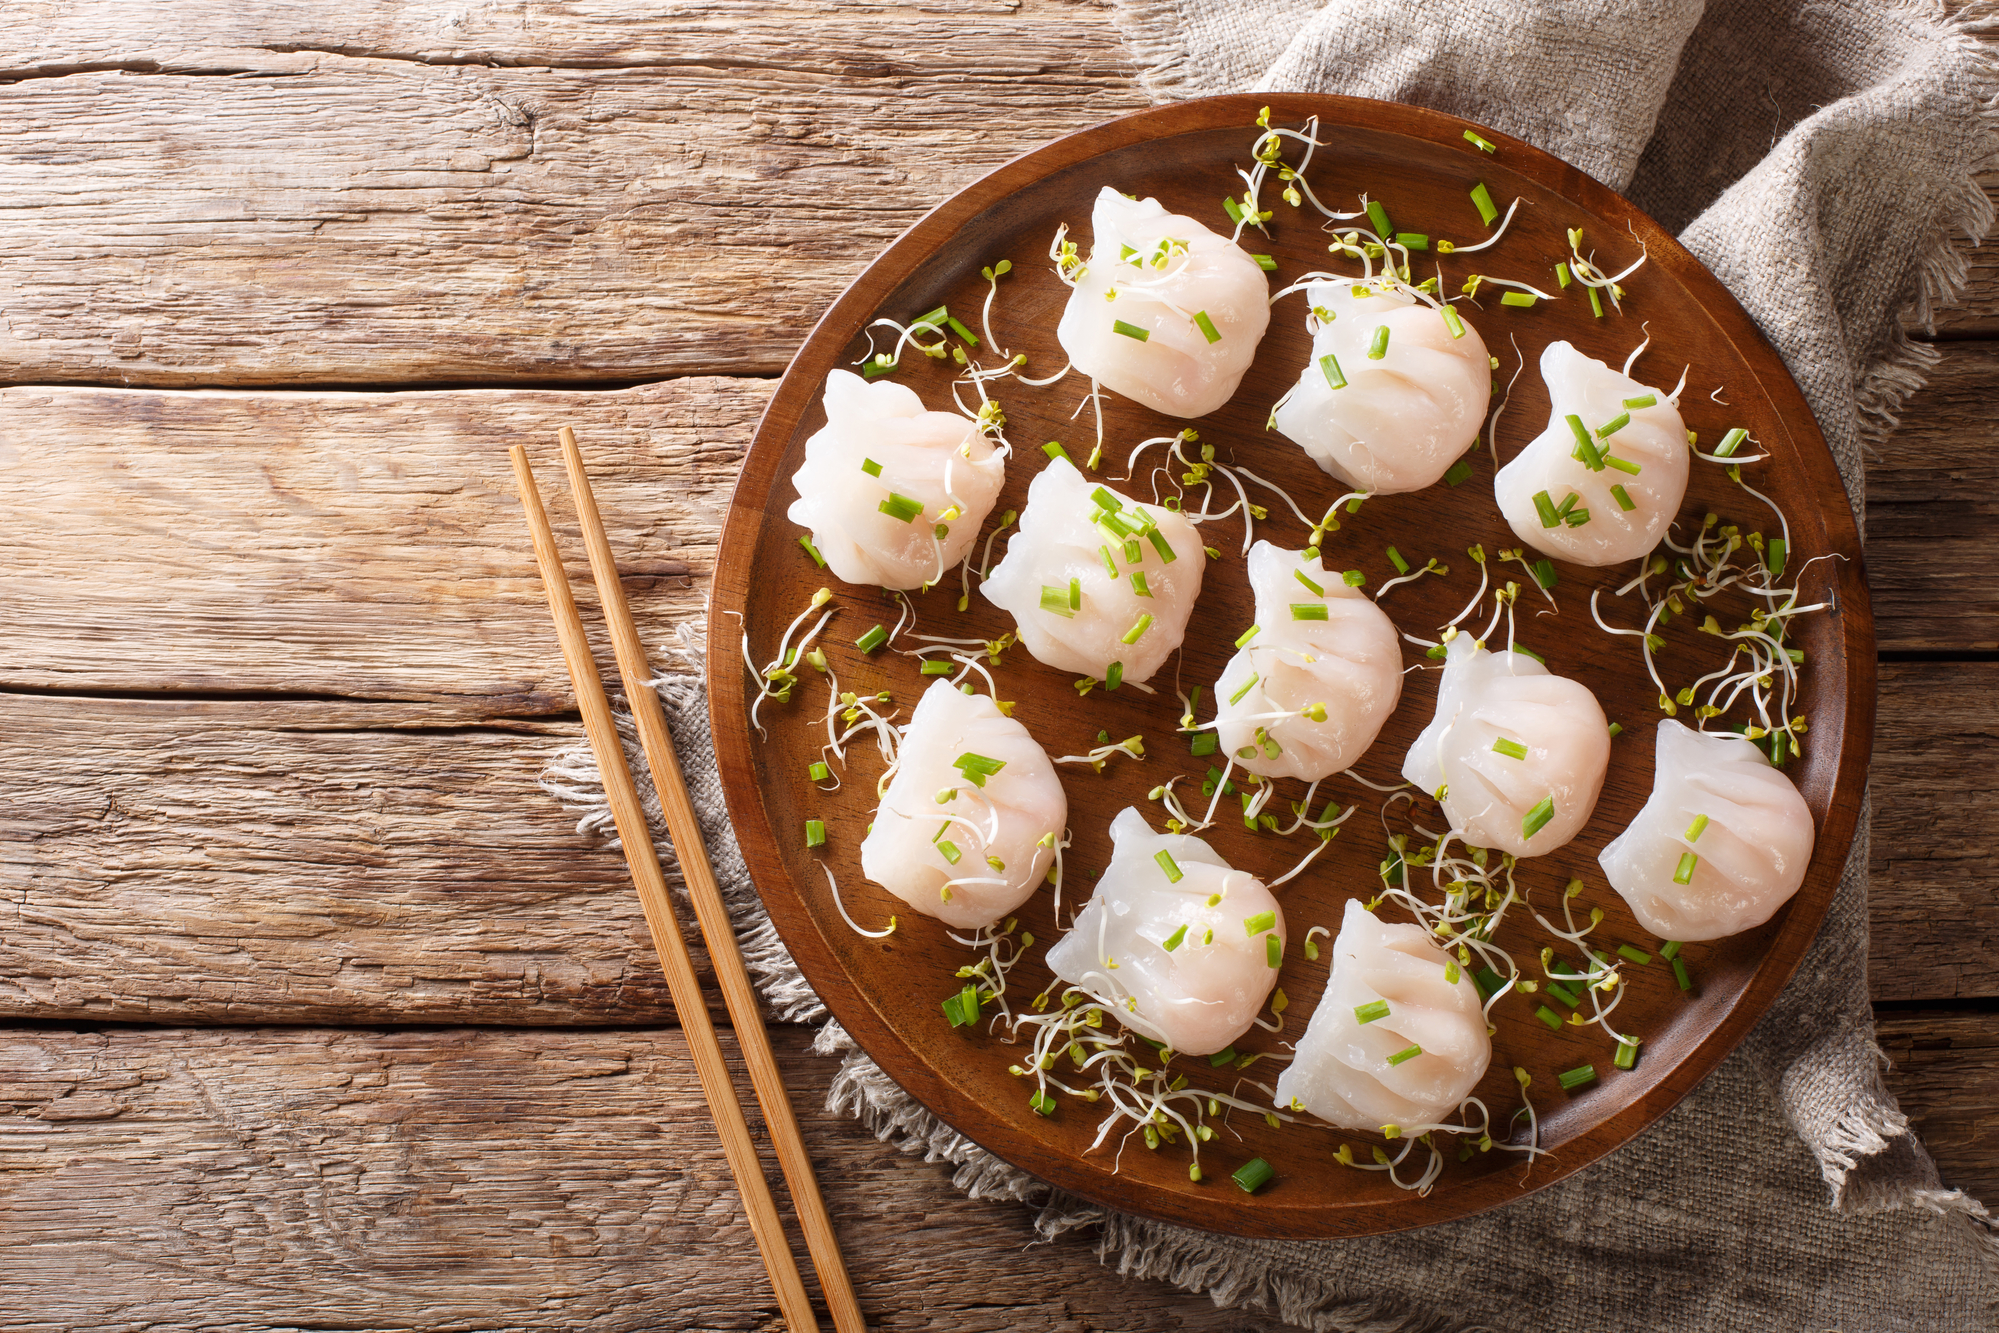 Dumplings just got better